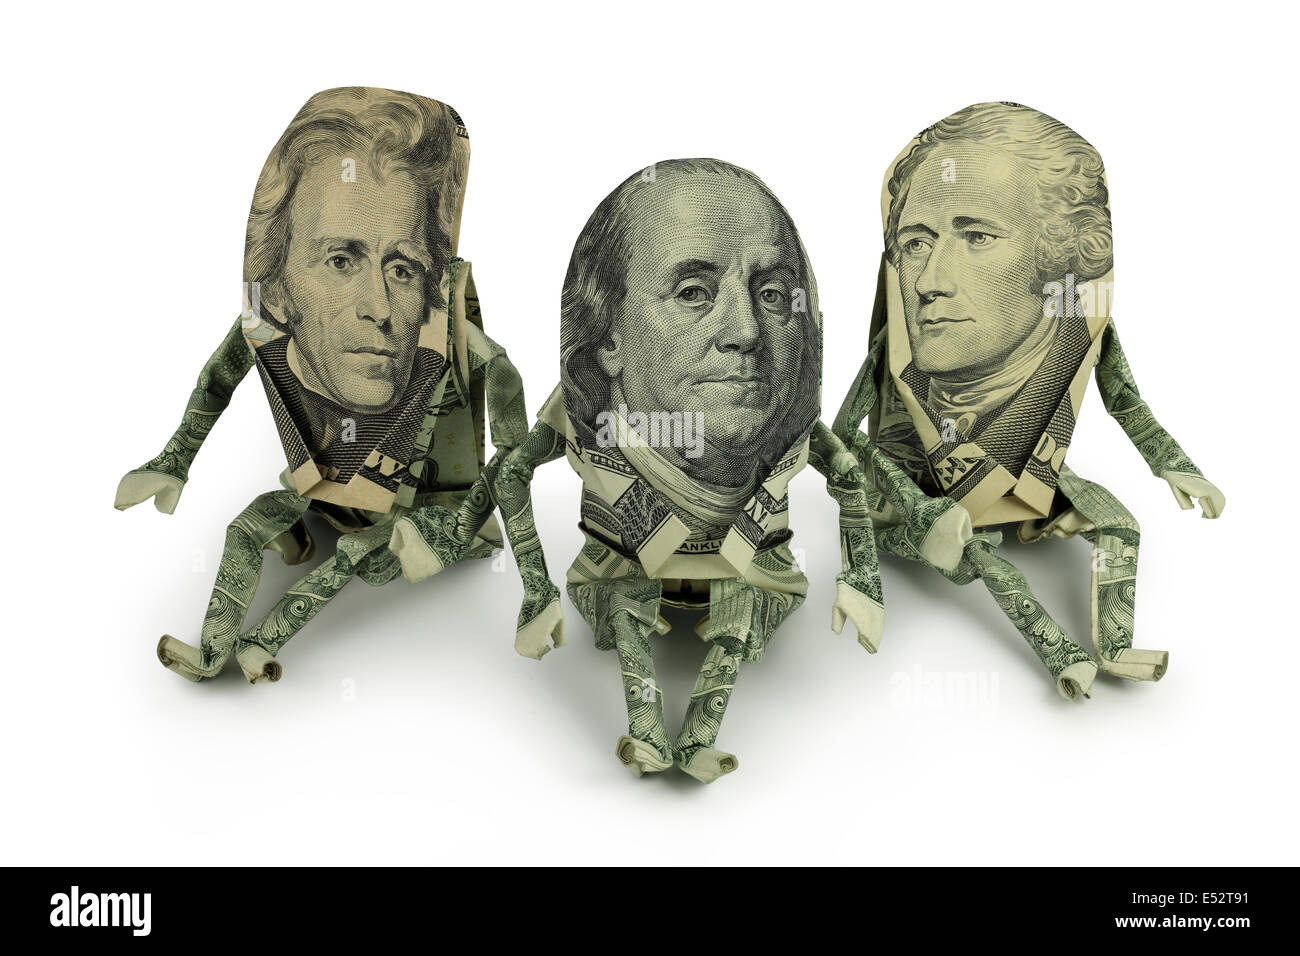 3 Origami human figures made from U.S. Currency with Ben Franklin in the middle. - Stock Image